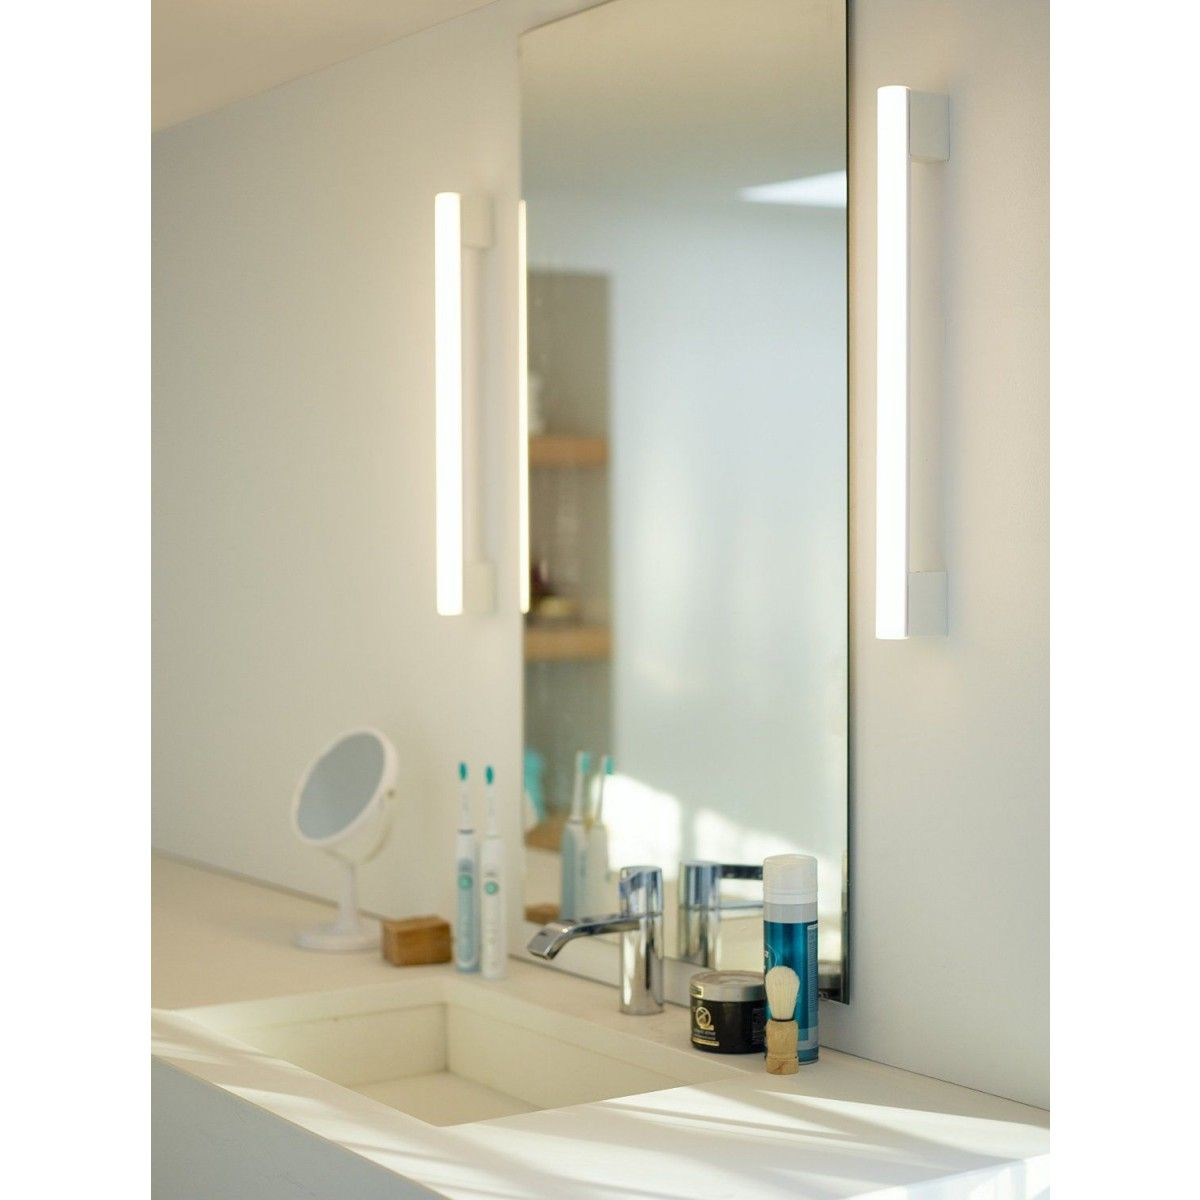 Bathroom Fixtures For Less insp: 2 base linestra light with wall mounted frame-less mirror